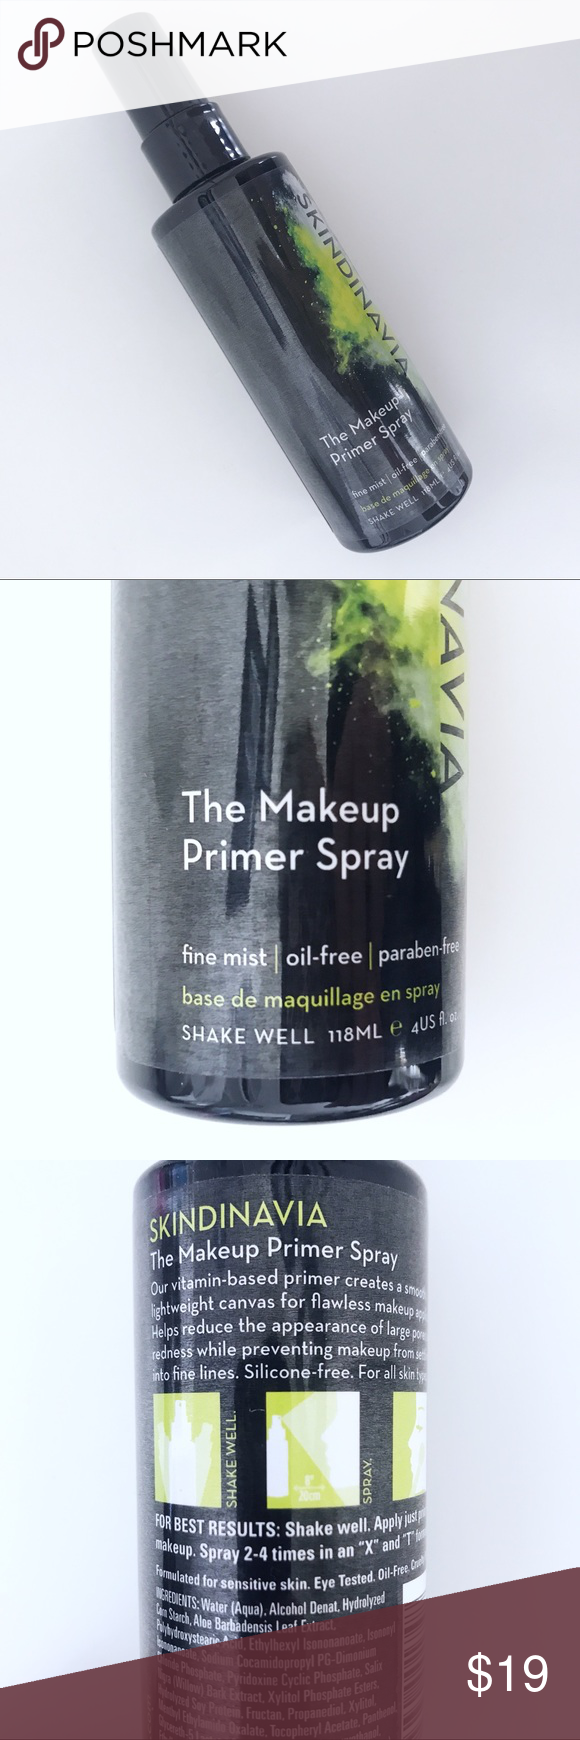 New Skindinavia The Makeup Primer Spray NWT (With images